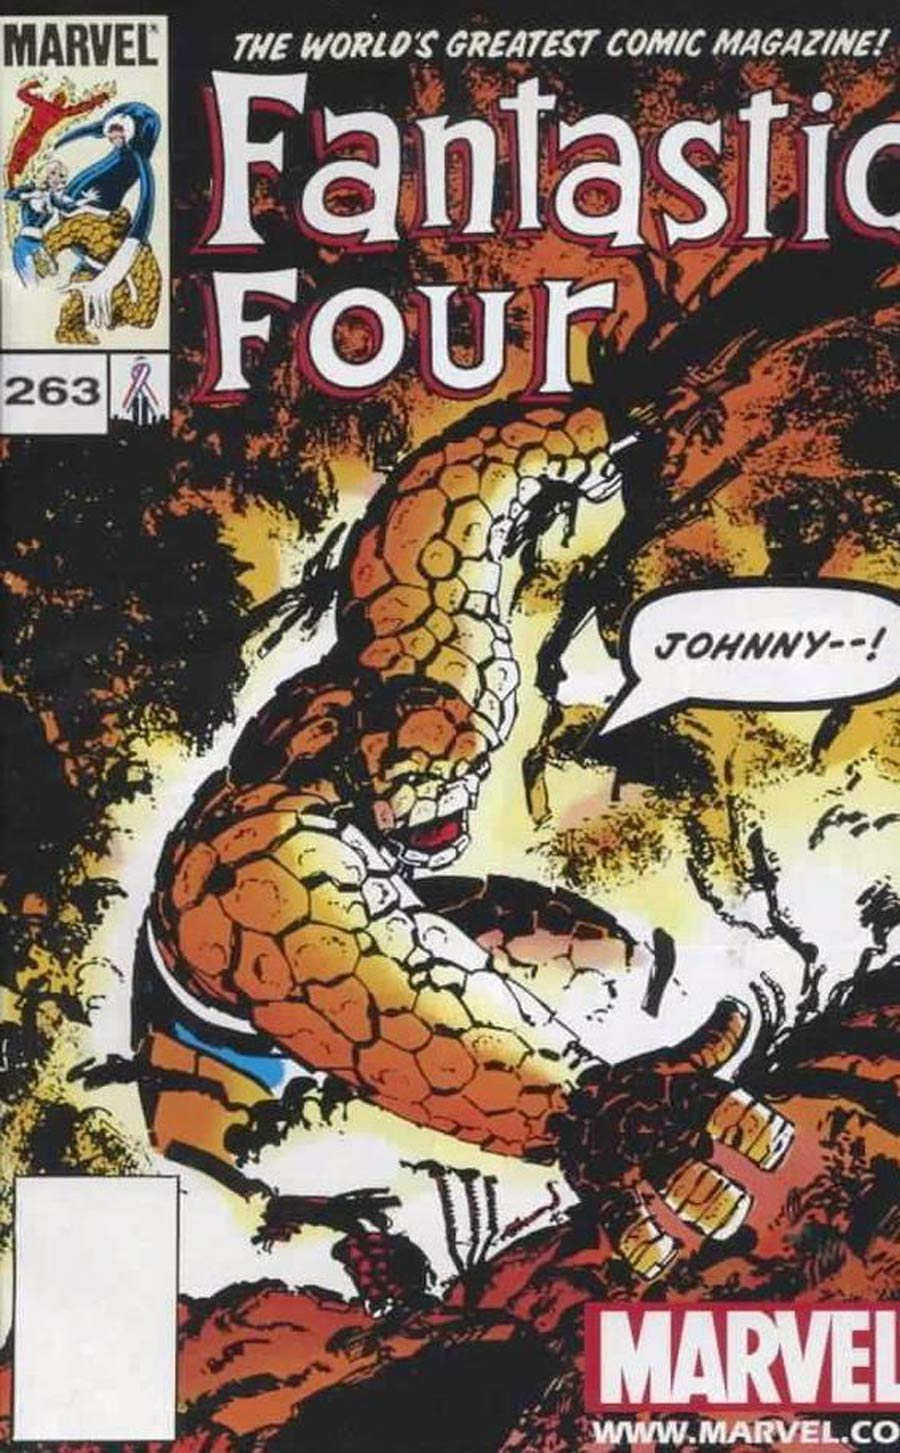 Fantastic Four #263 Cover B Toy Reprint